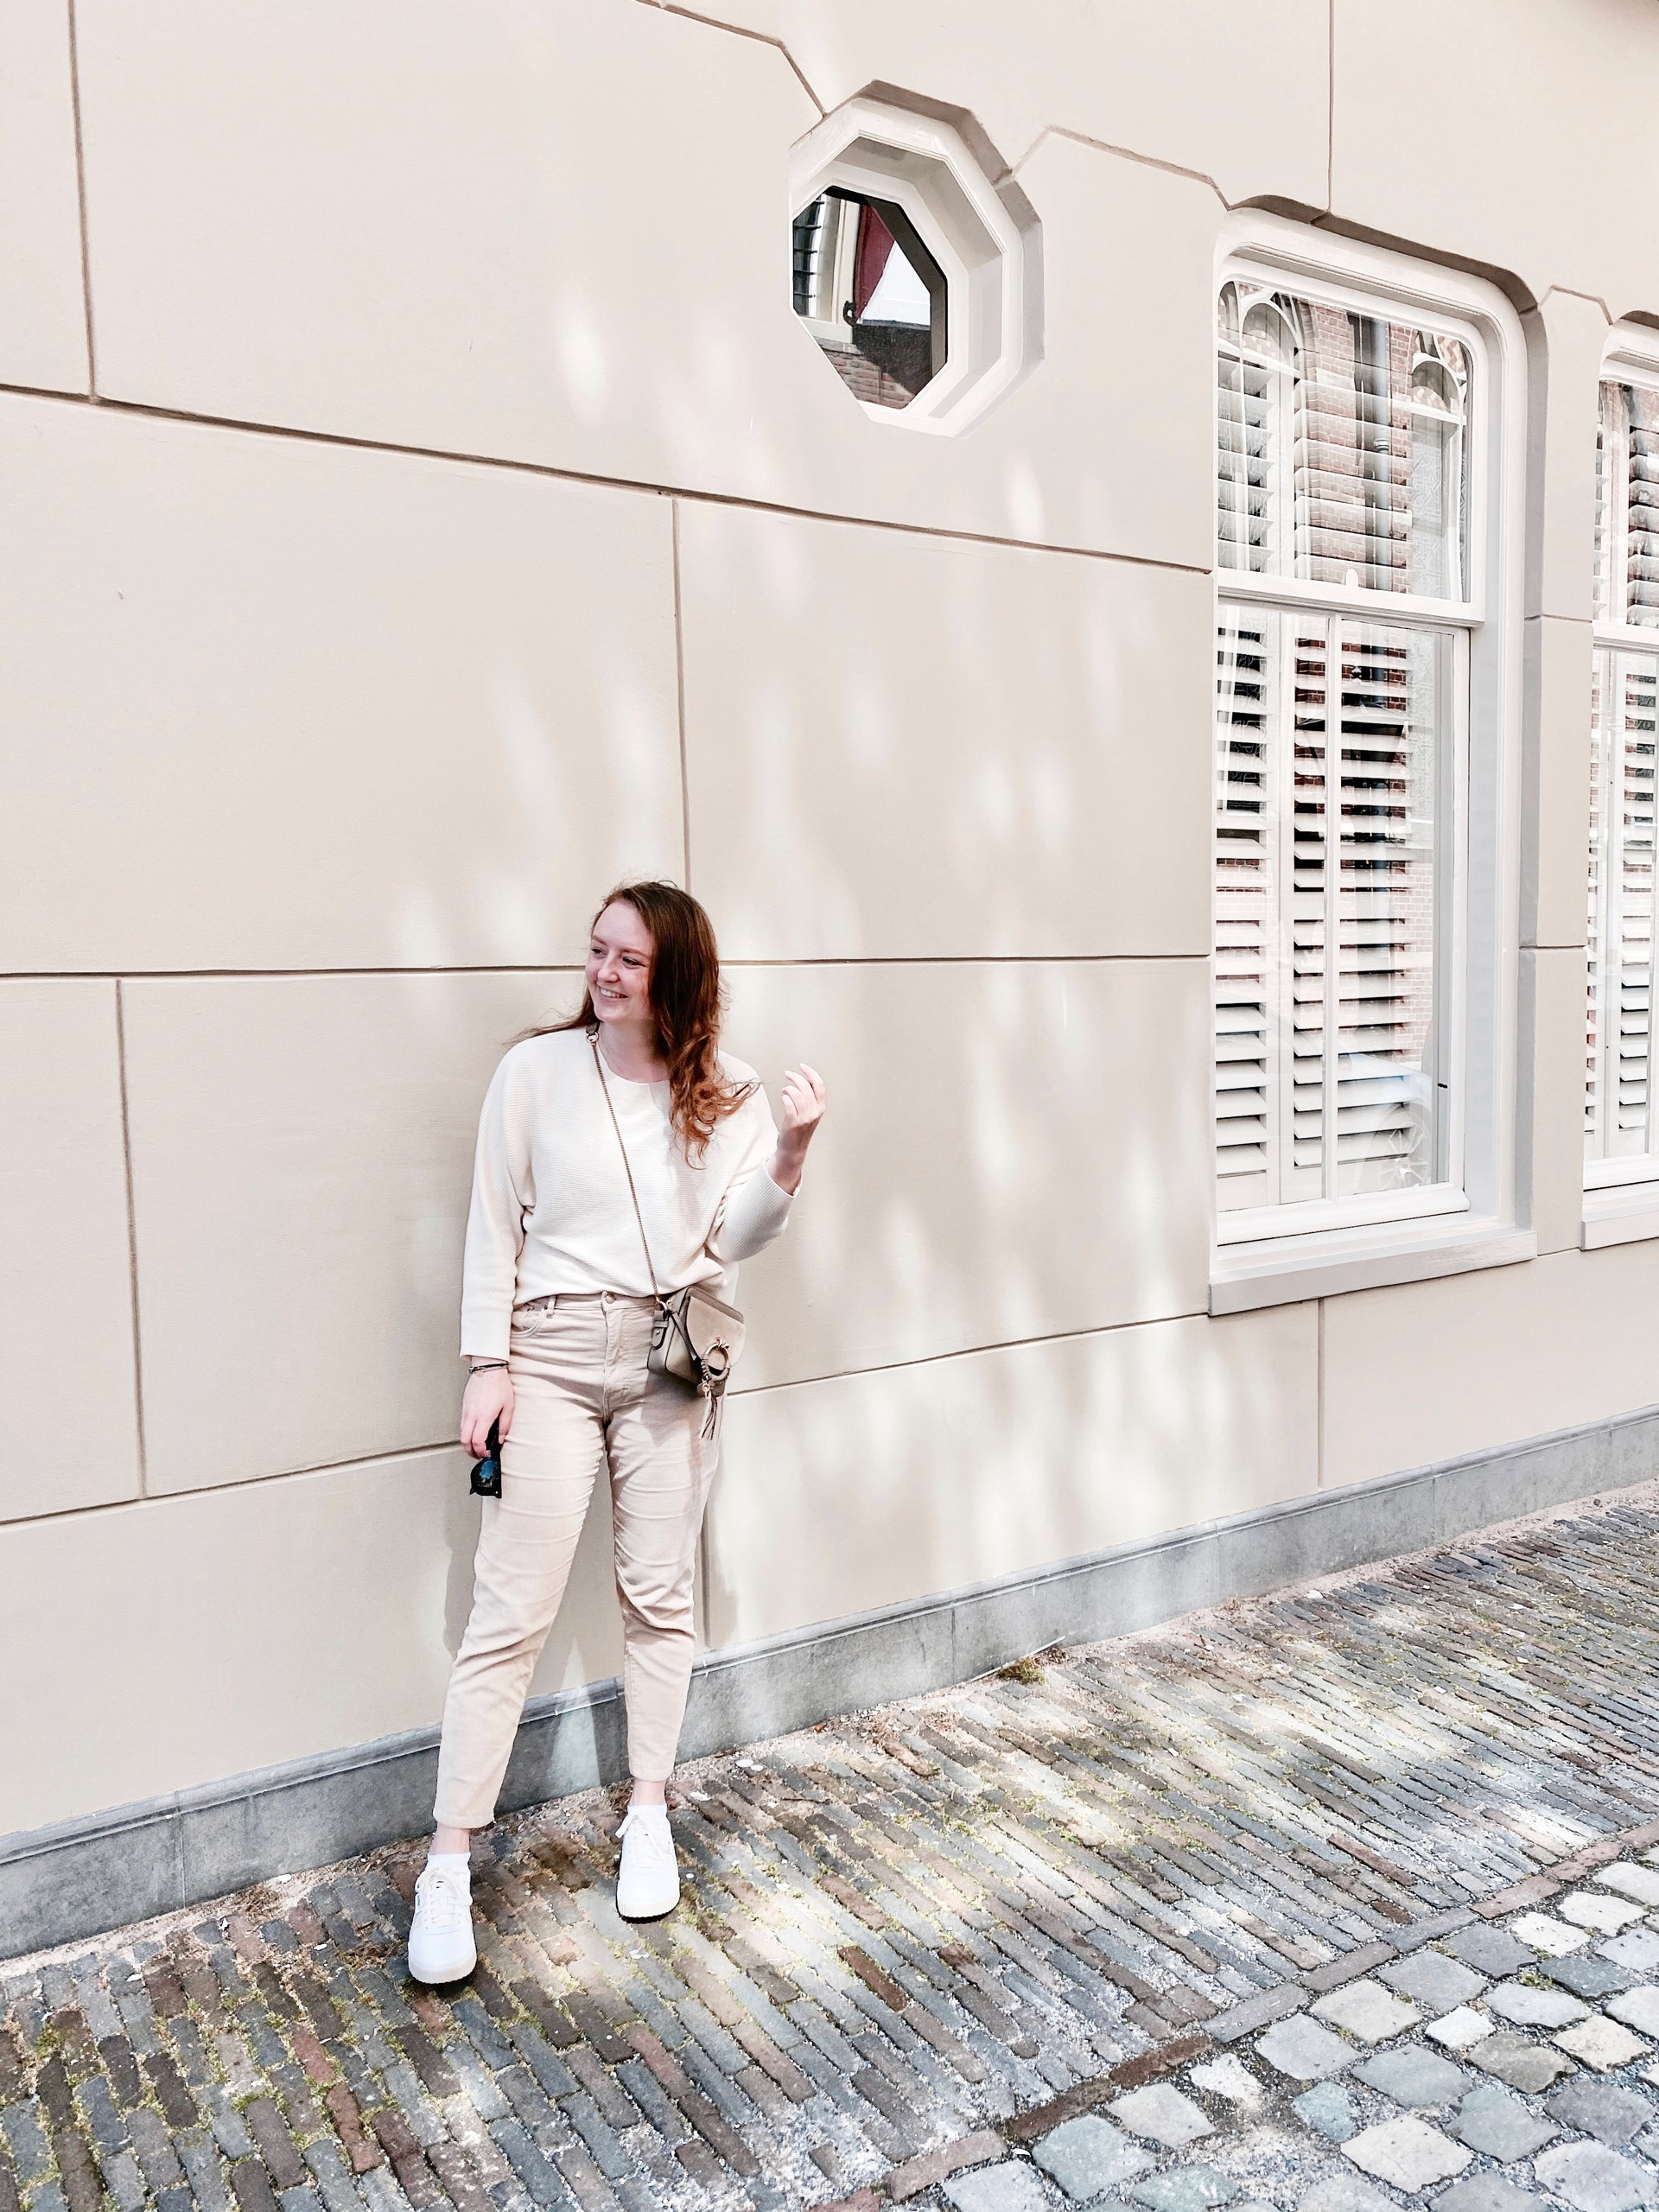 Soft Tones Beige Aesthetic Outfit Thoughts In Style